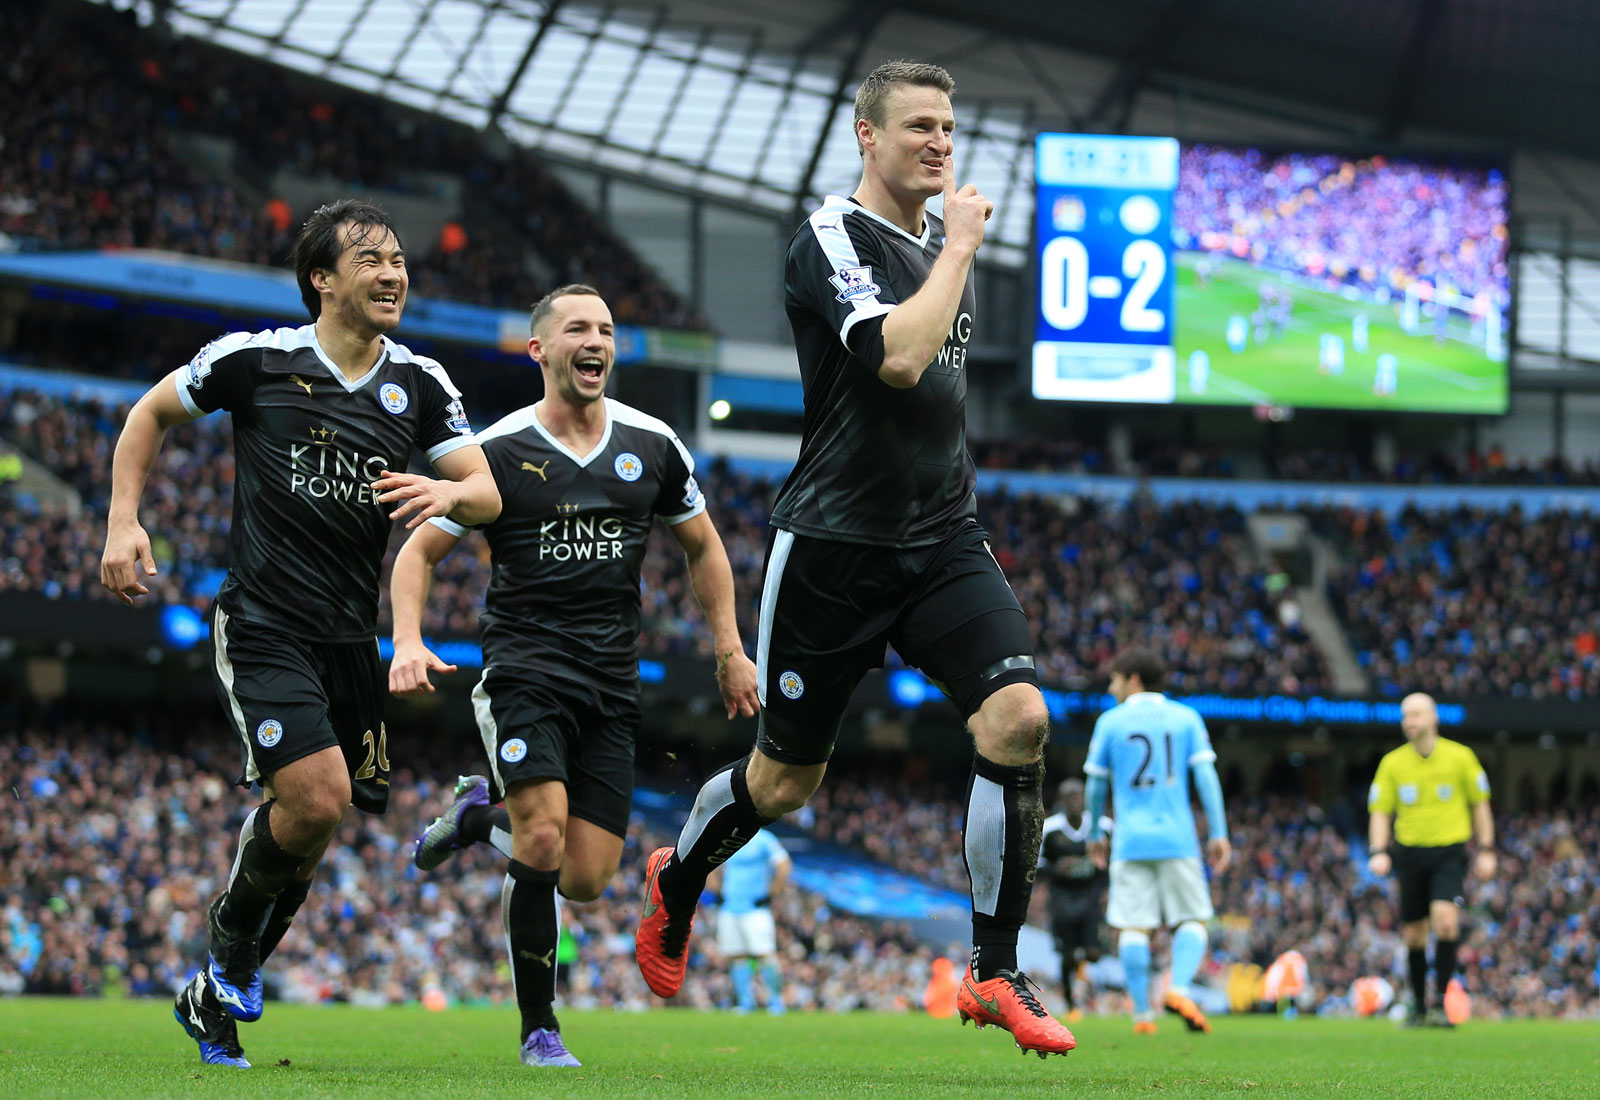 A match at Manchester City was supposed to be the start of Leicester's downfall, but the Foxes were having none of that. Robert Huth scored in the third minute to shock the Etihad faithful, and he added another later to proclaim Leicester's intentions in a 3-1 win.